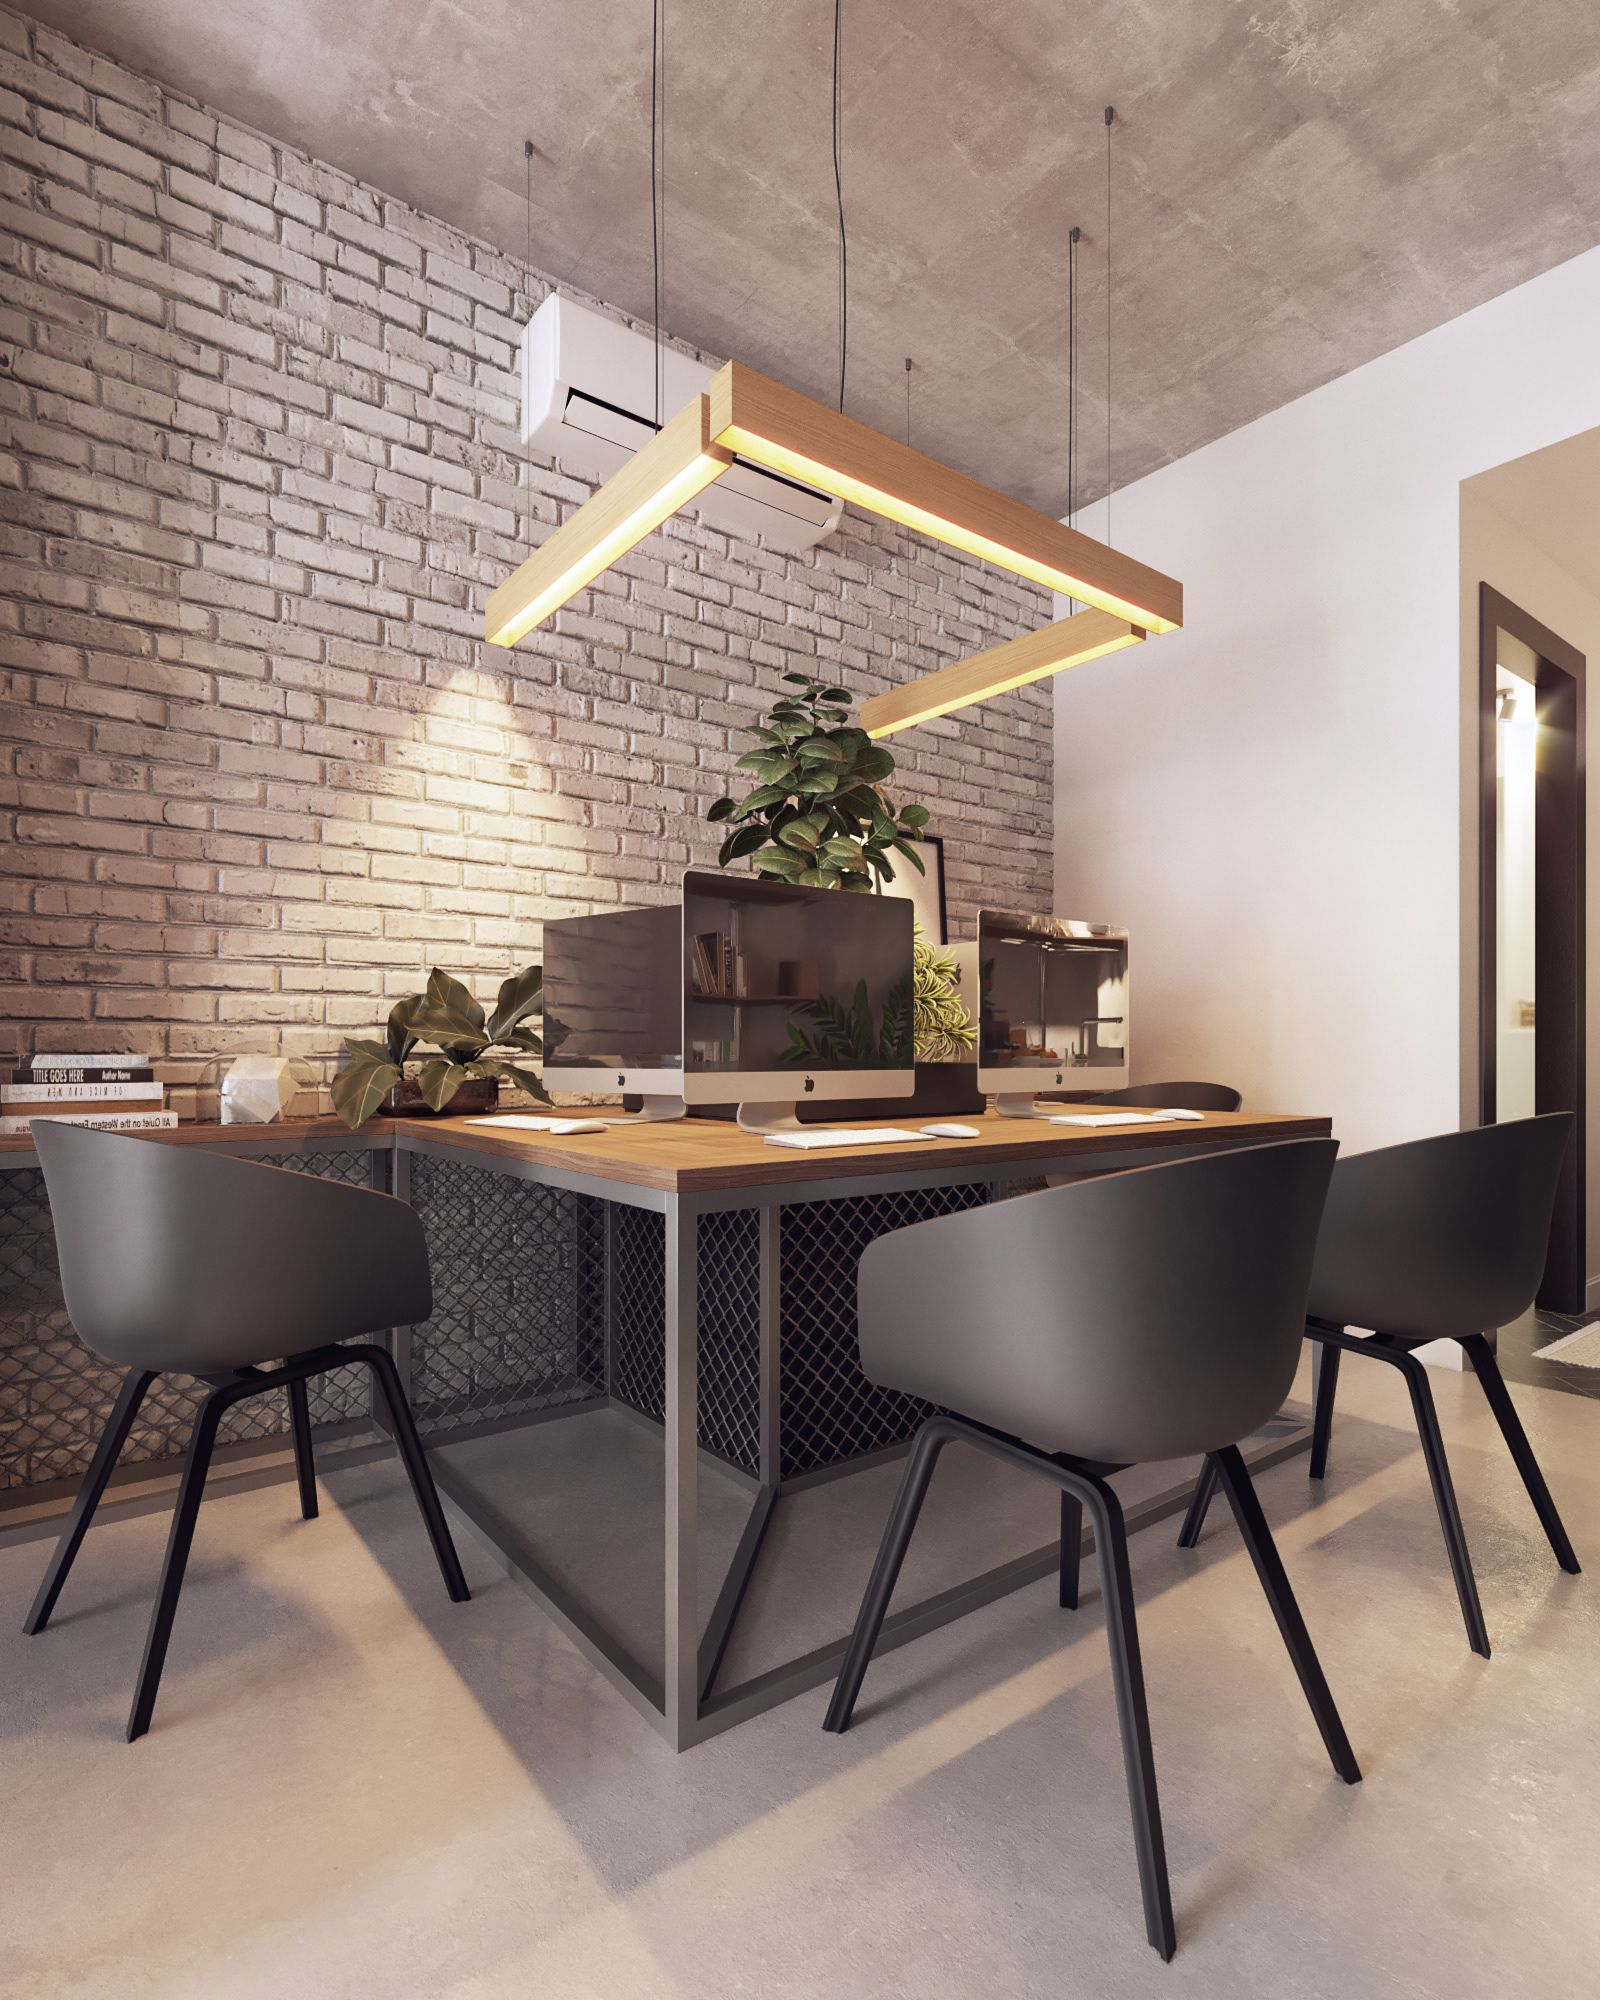 Small Officetel On Behance In 2020 Office Furniture Design Office Interior Design Office Table Design